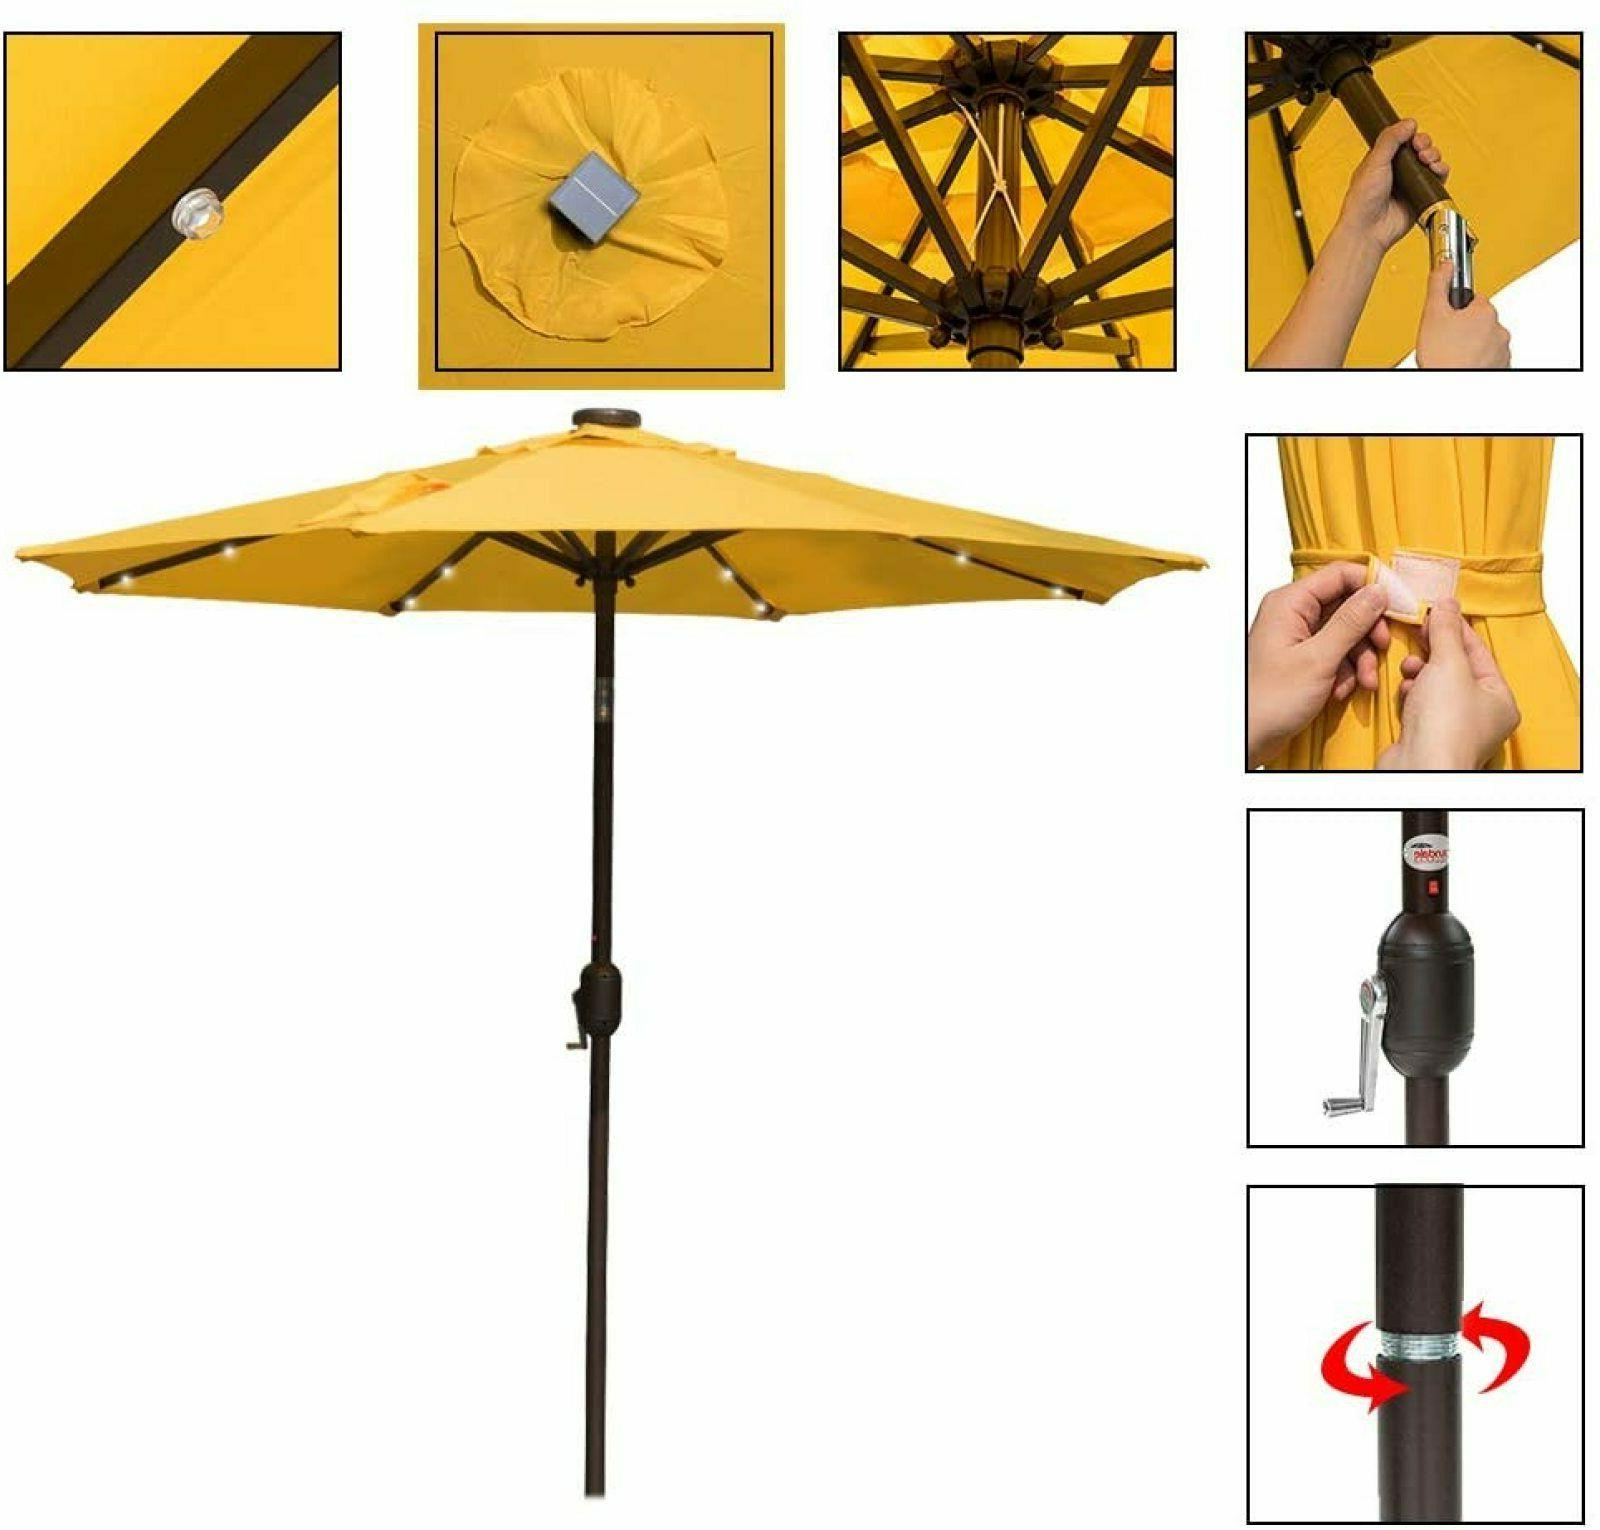 Patio Table 7 ft 24 LED Lighted Umbrellas Yellow